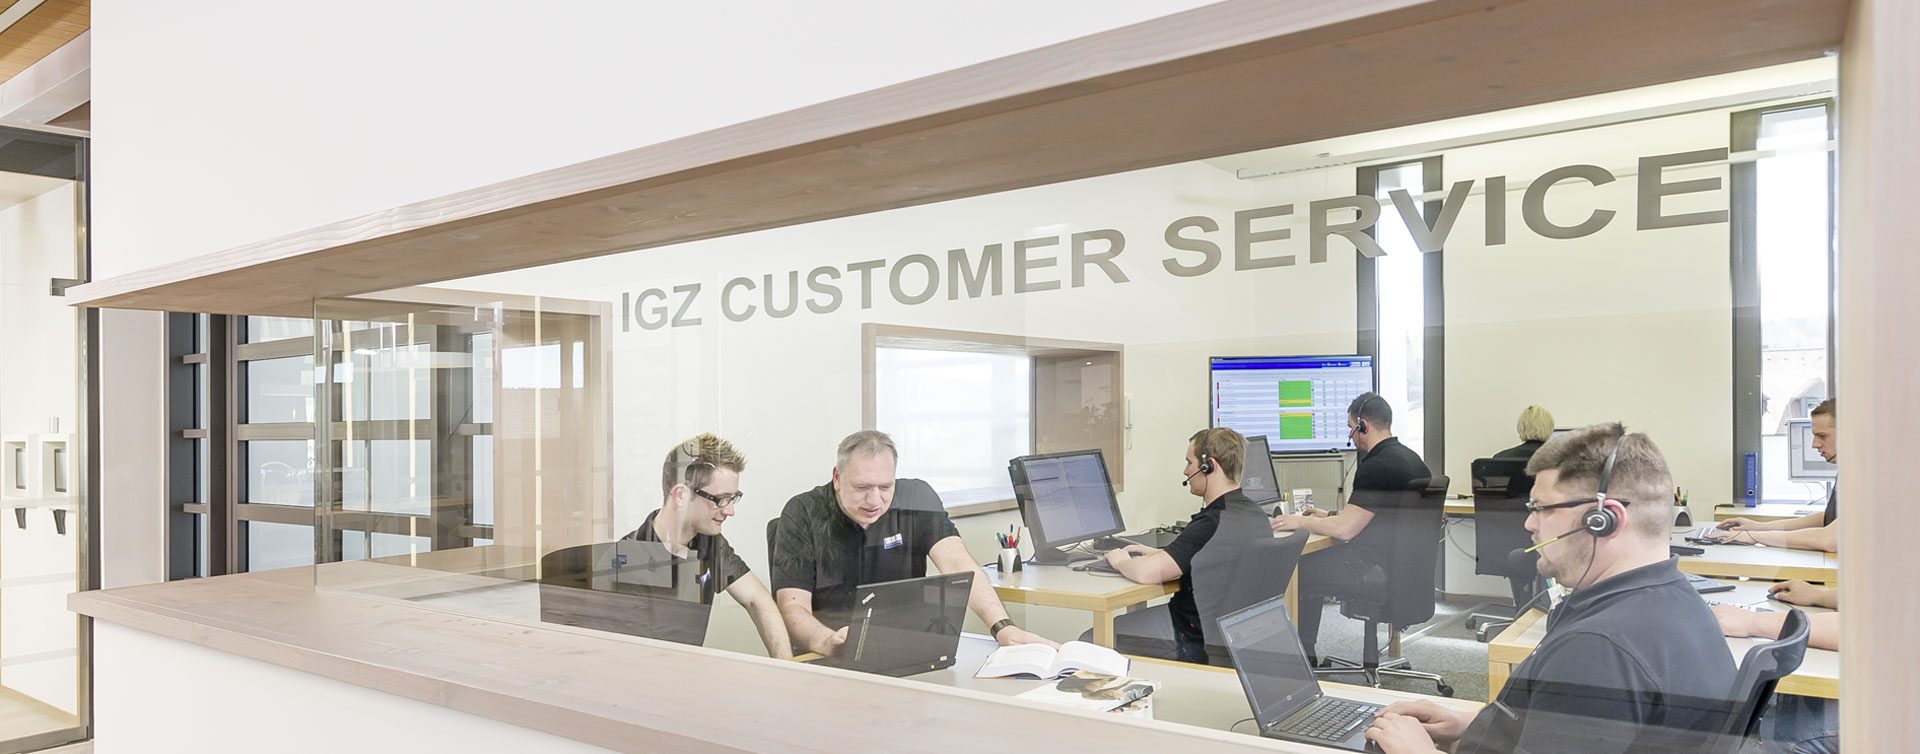 IGZ CUSTOMER SERVICE